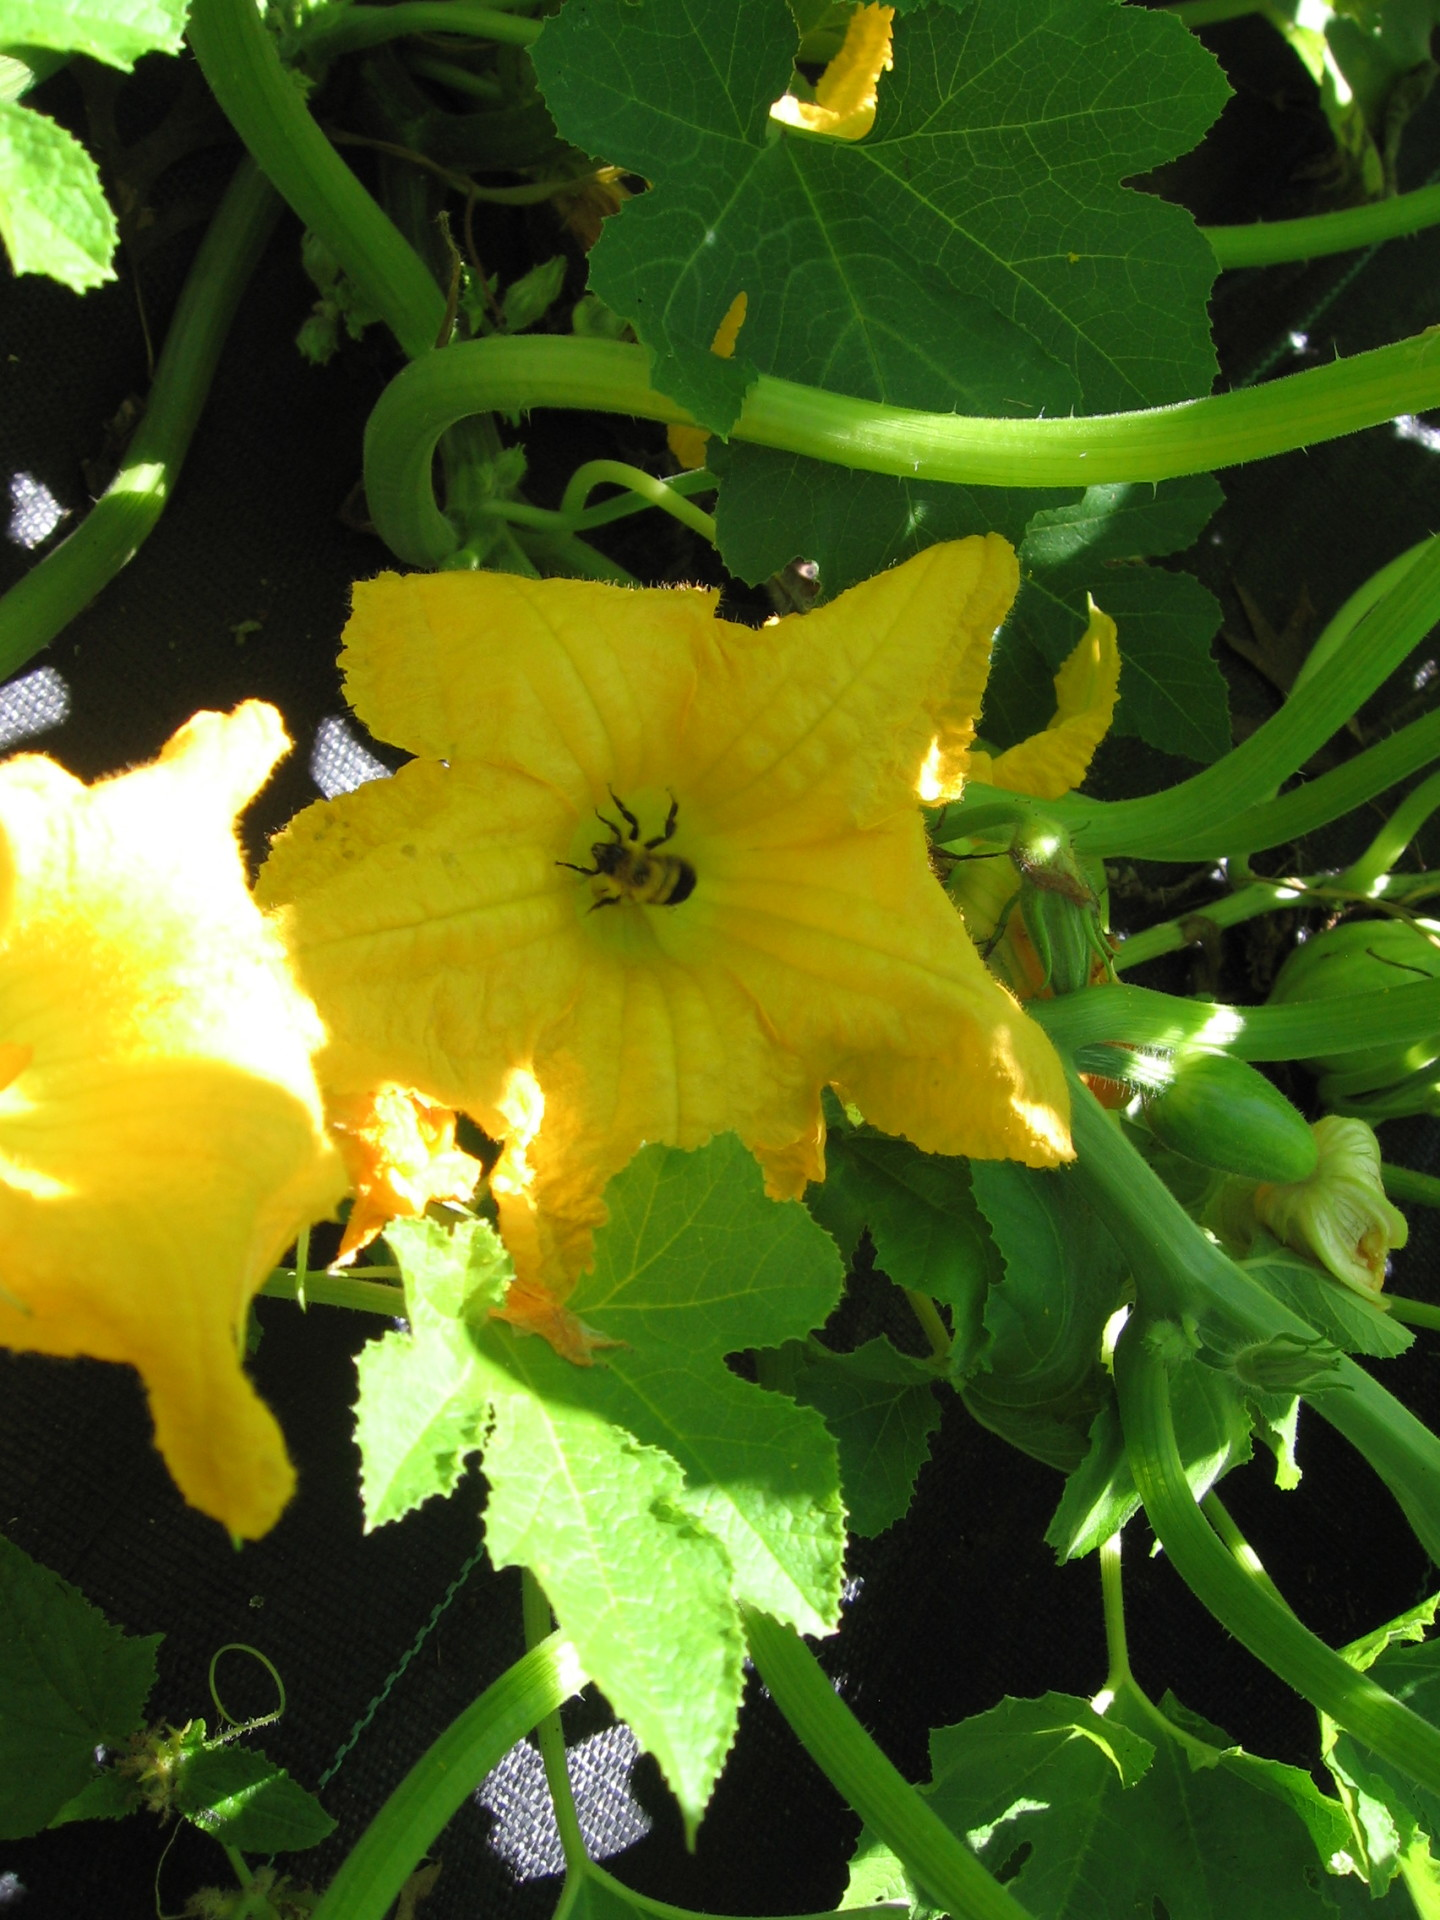 Squash Flower with Bumble Bee